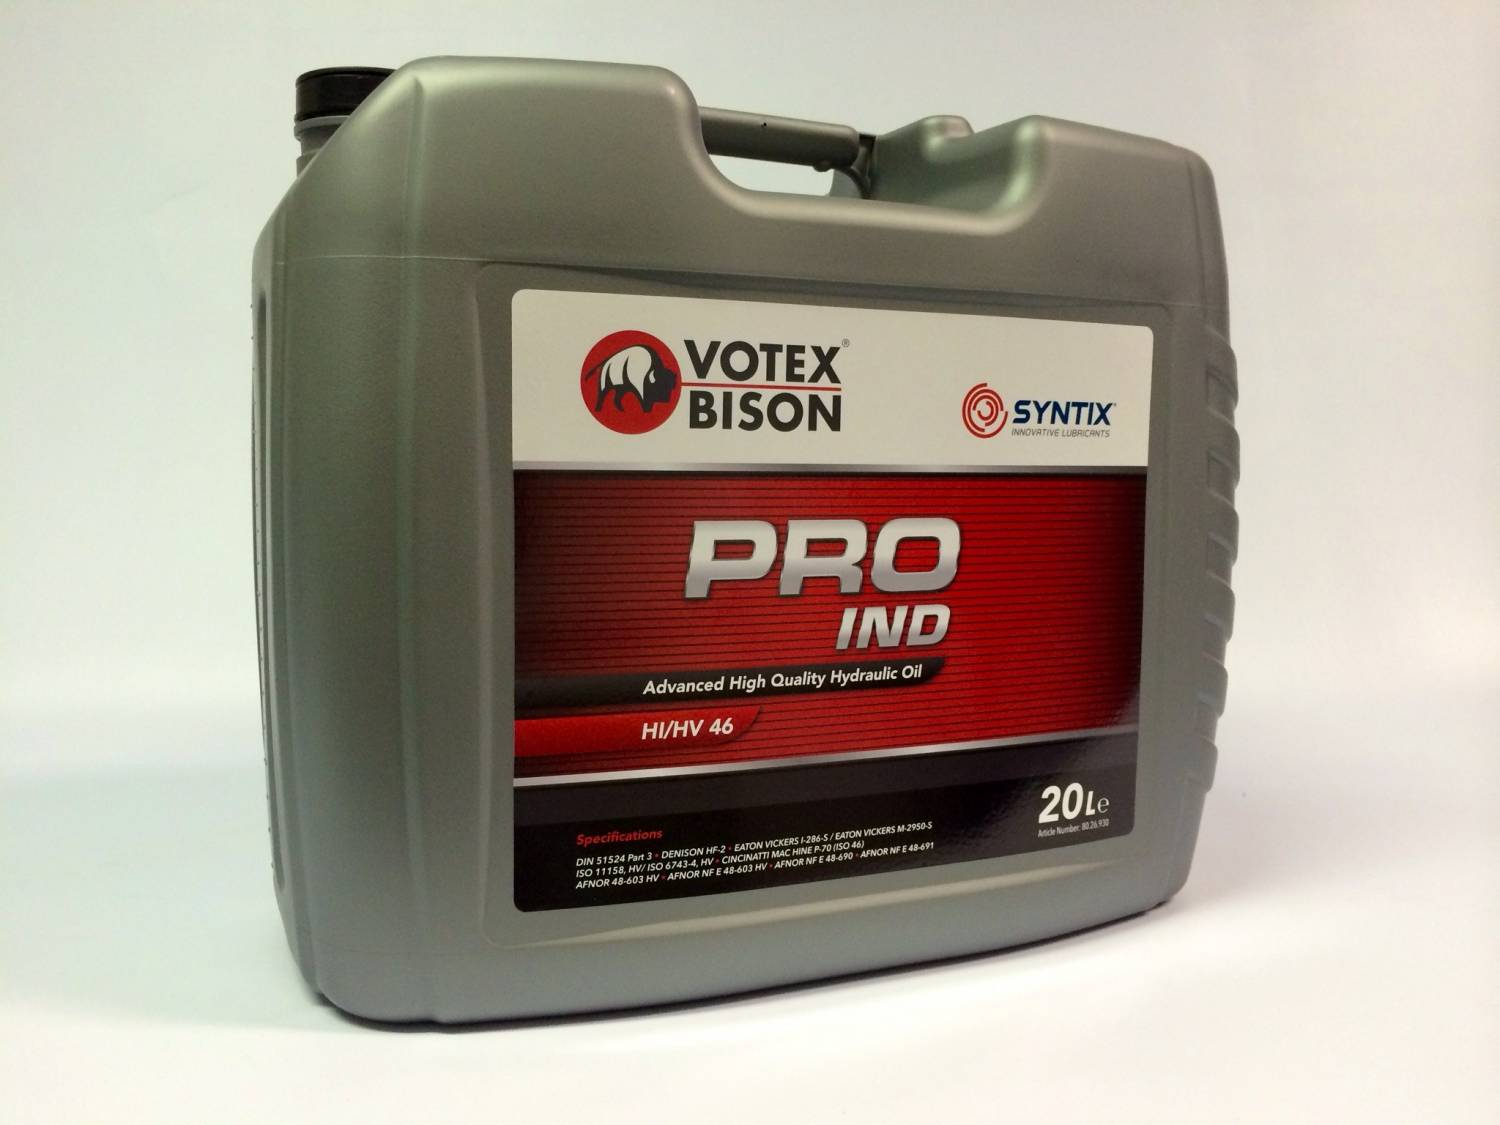 Votex Bison PRO IND - Advanced High Quality Hydraulic Oil - HIHV 46 - Syntix Innovative Lubricants